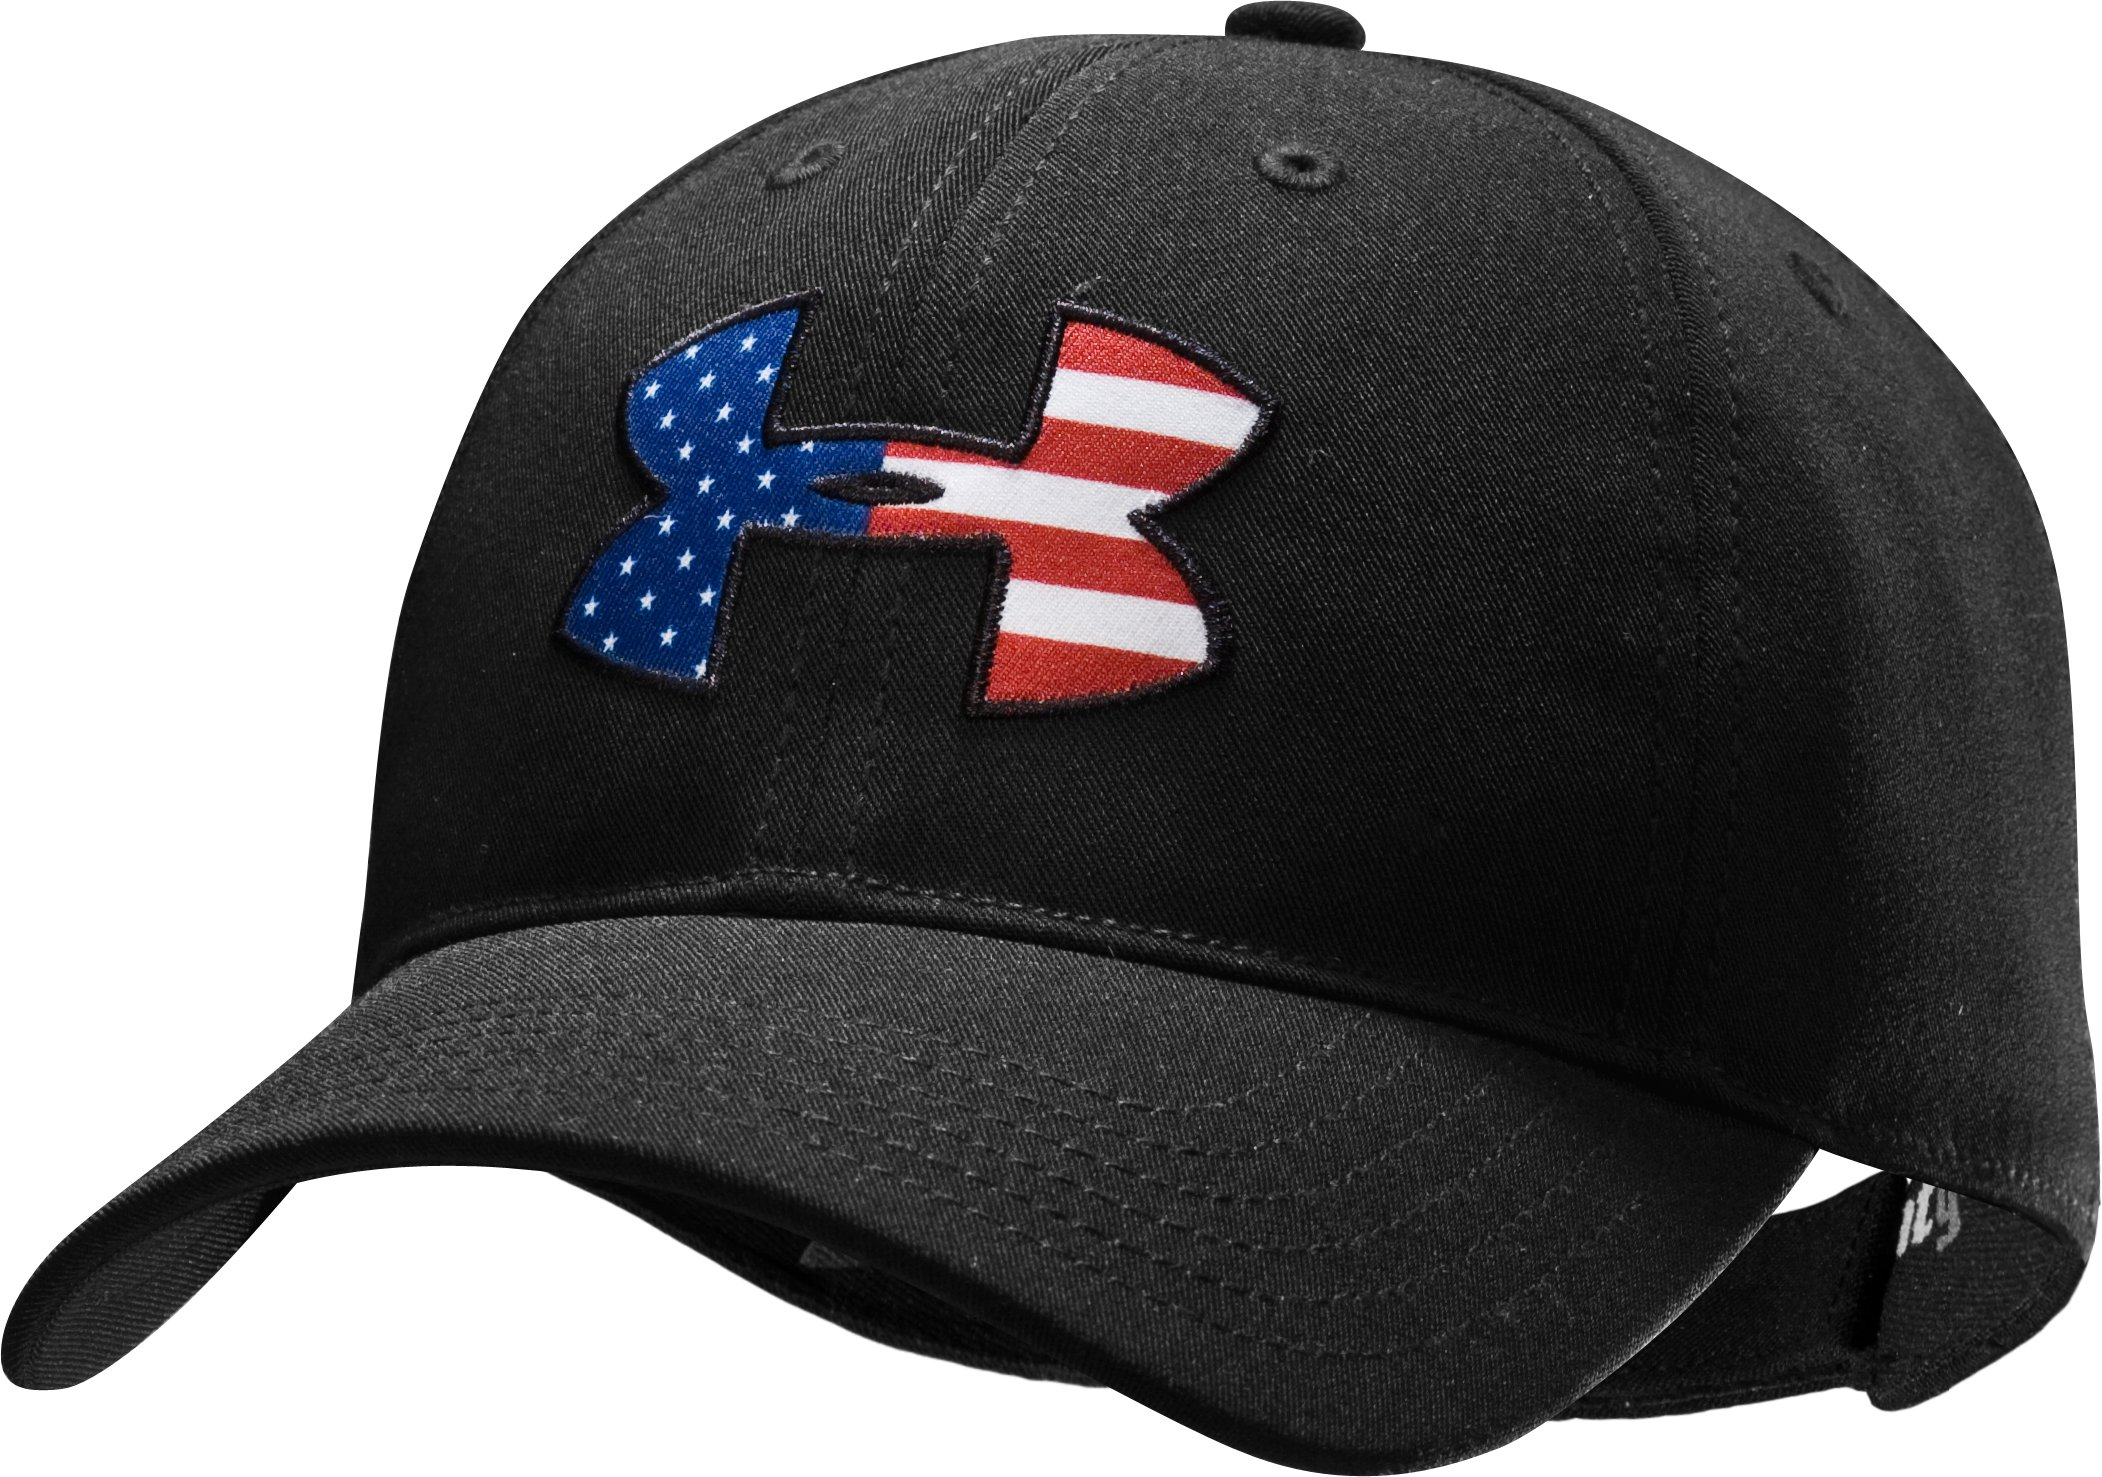 Men's Big Flag Logo Adjustable Cap, Black , undefined